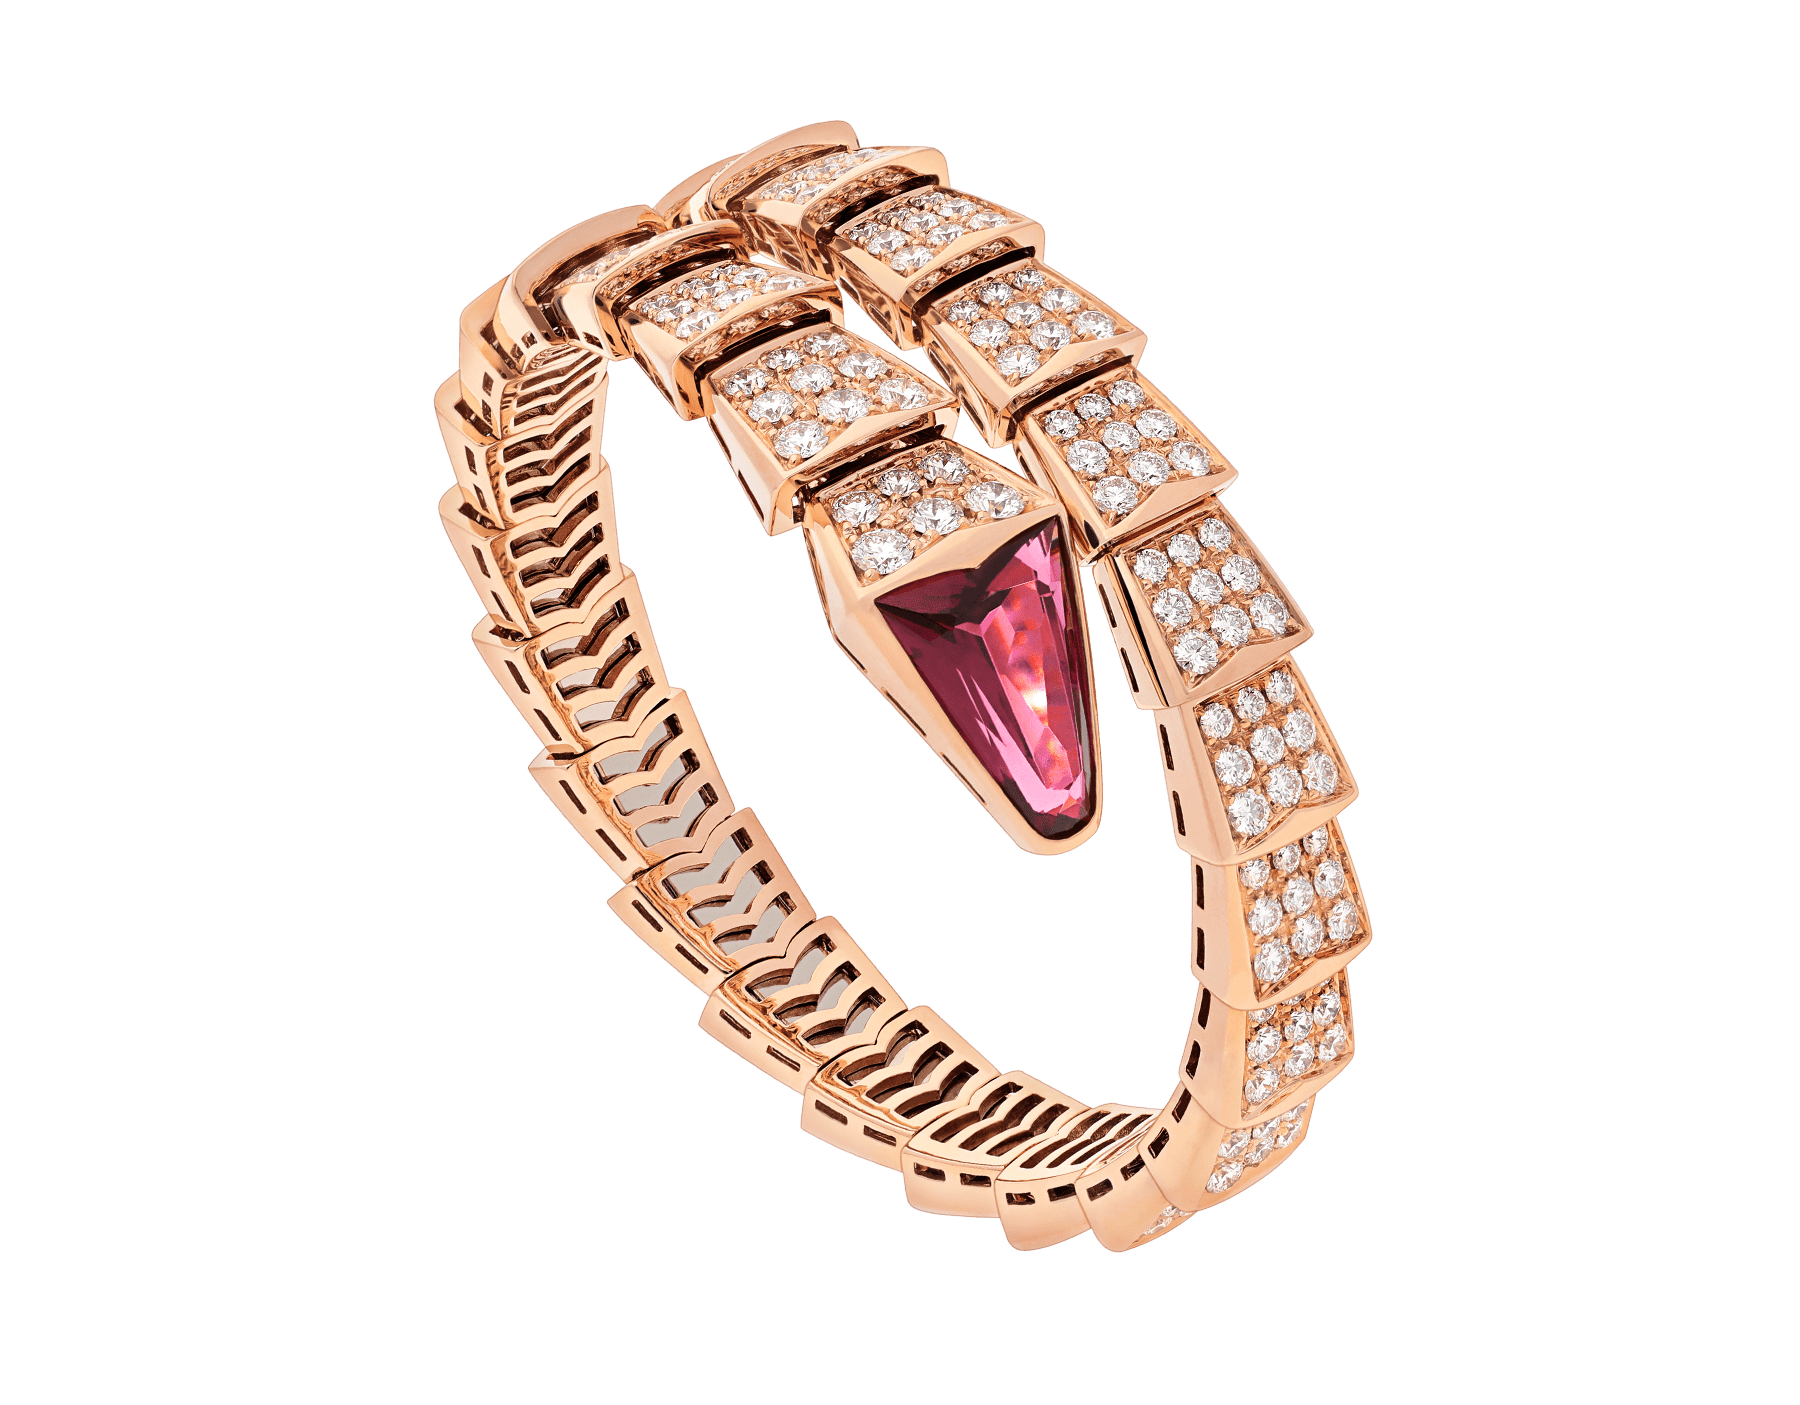 Serpenti one-coil bracelet in 18 kt rose gold, set with full pavé diamonds and a rubellite on the head. BR856126 image 1